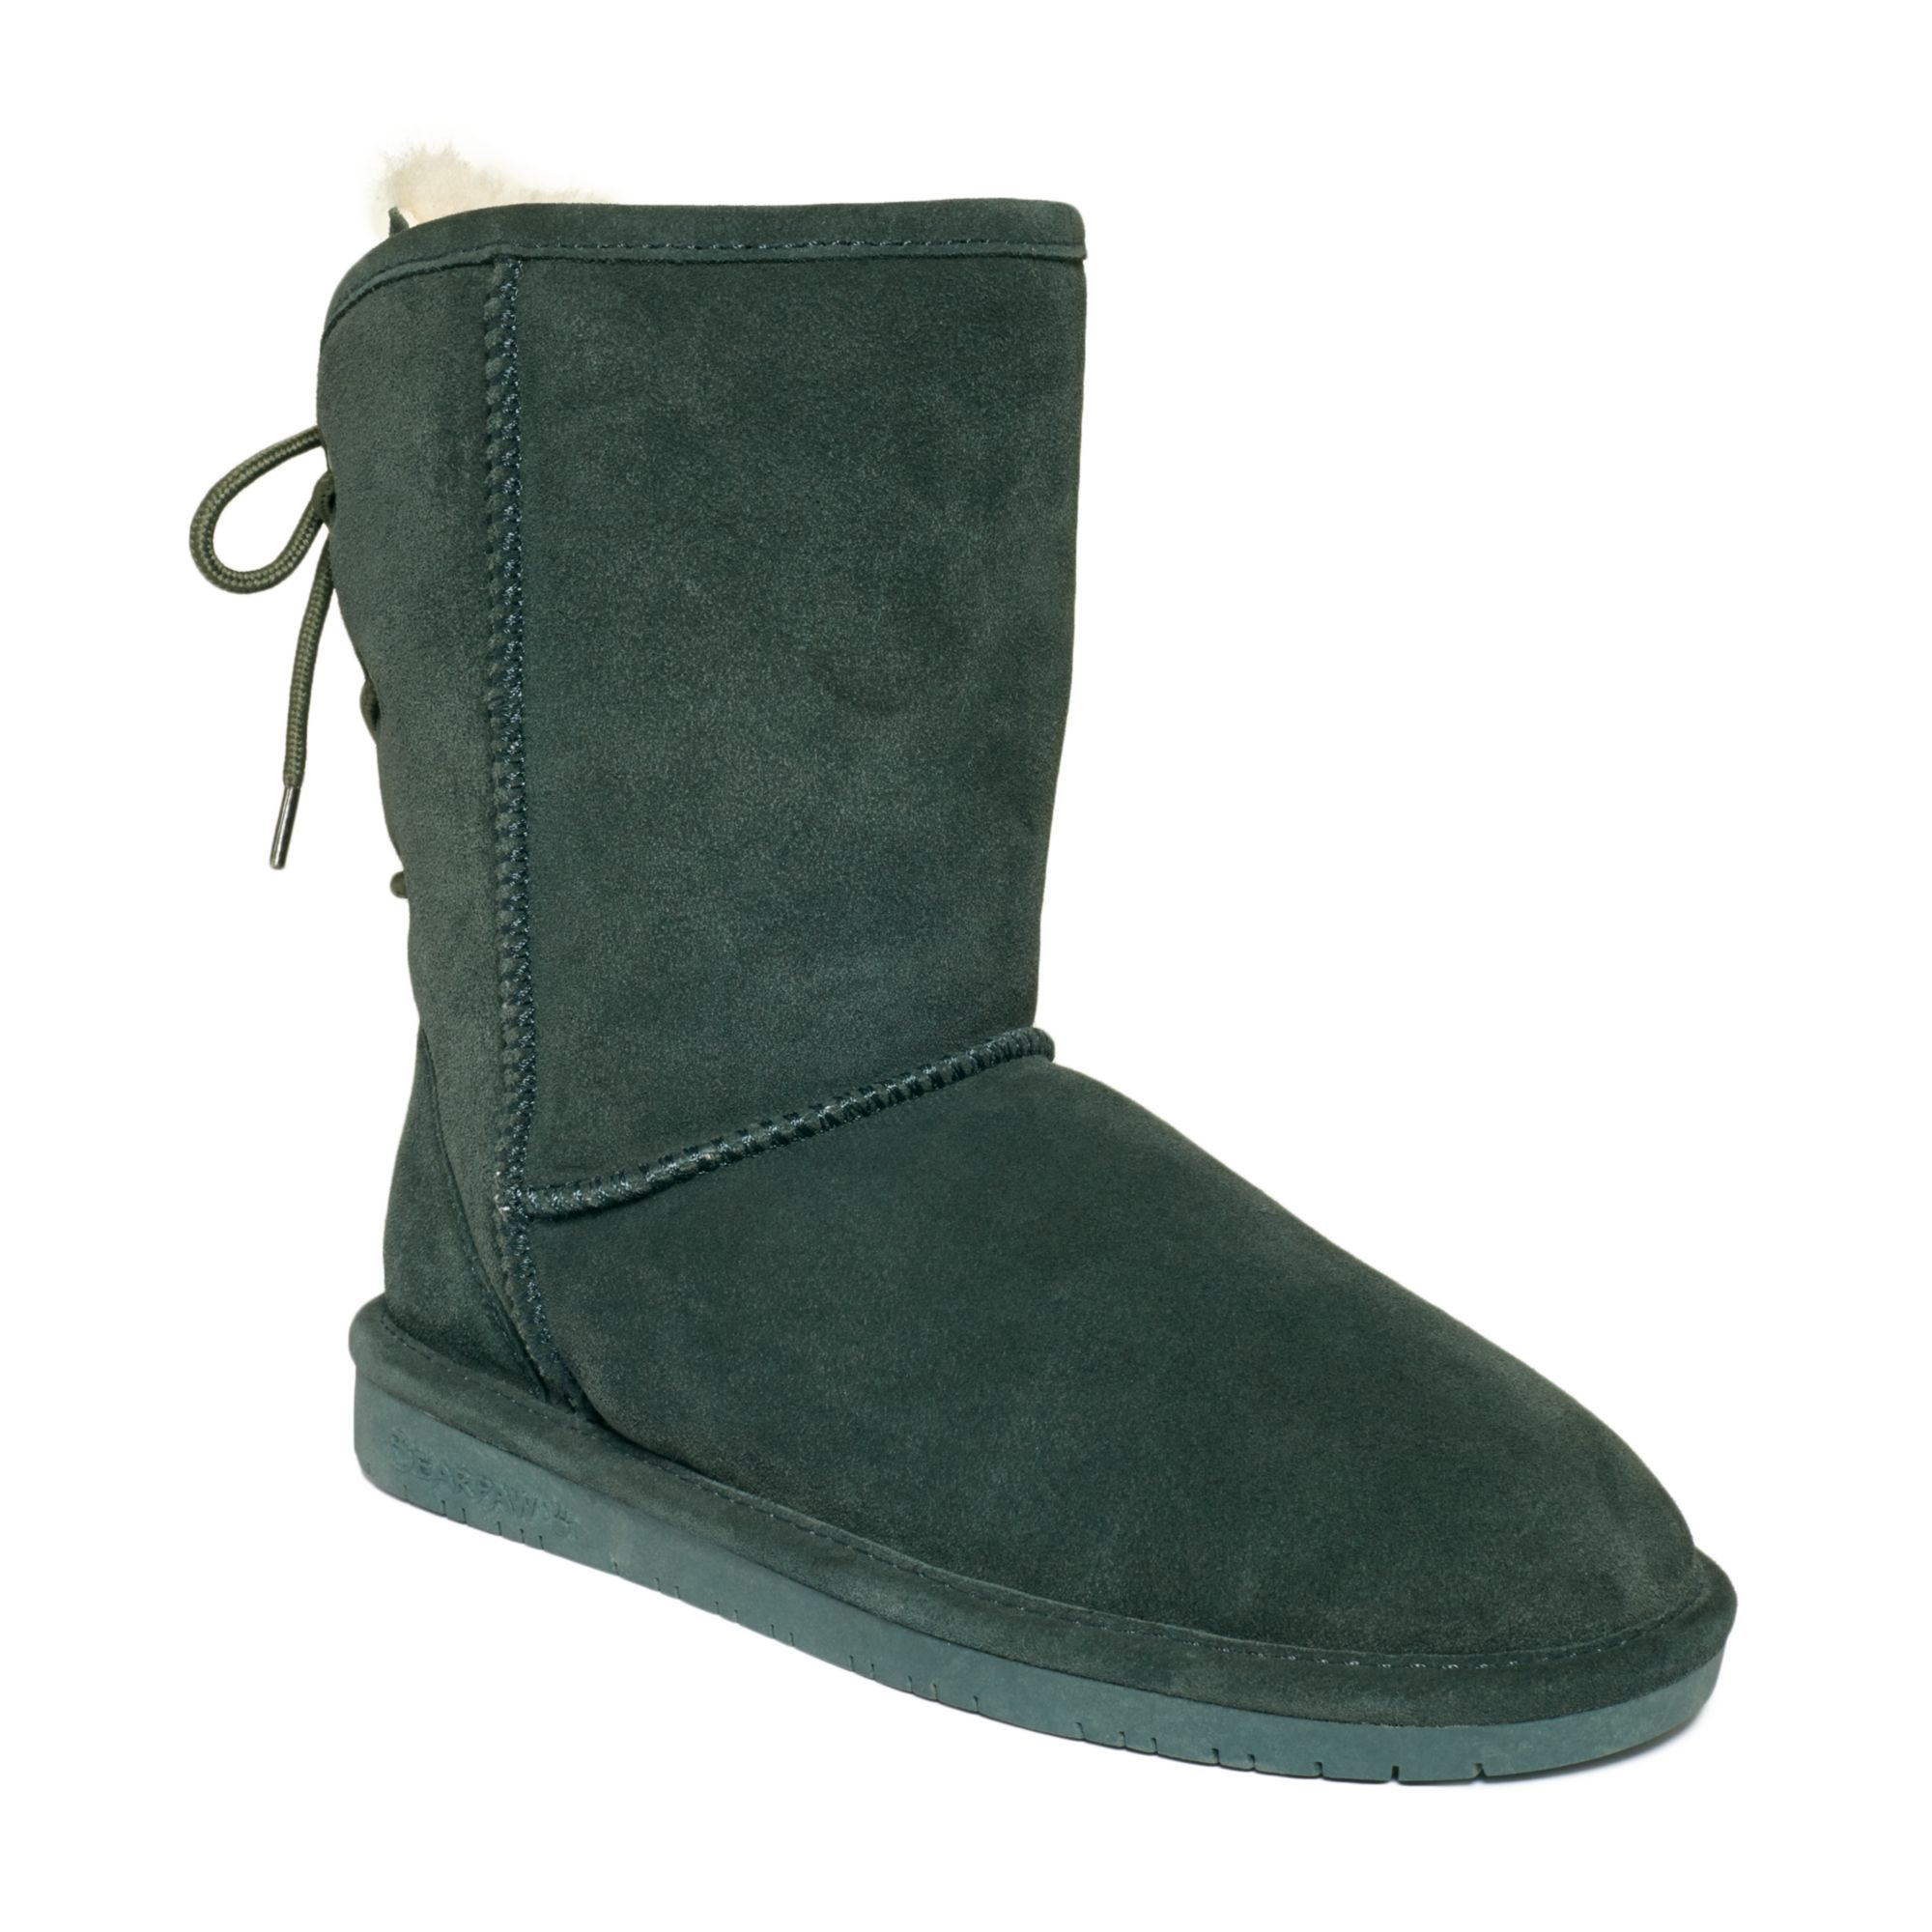 Bearpaw Shoes Uk